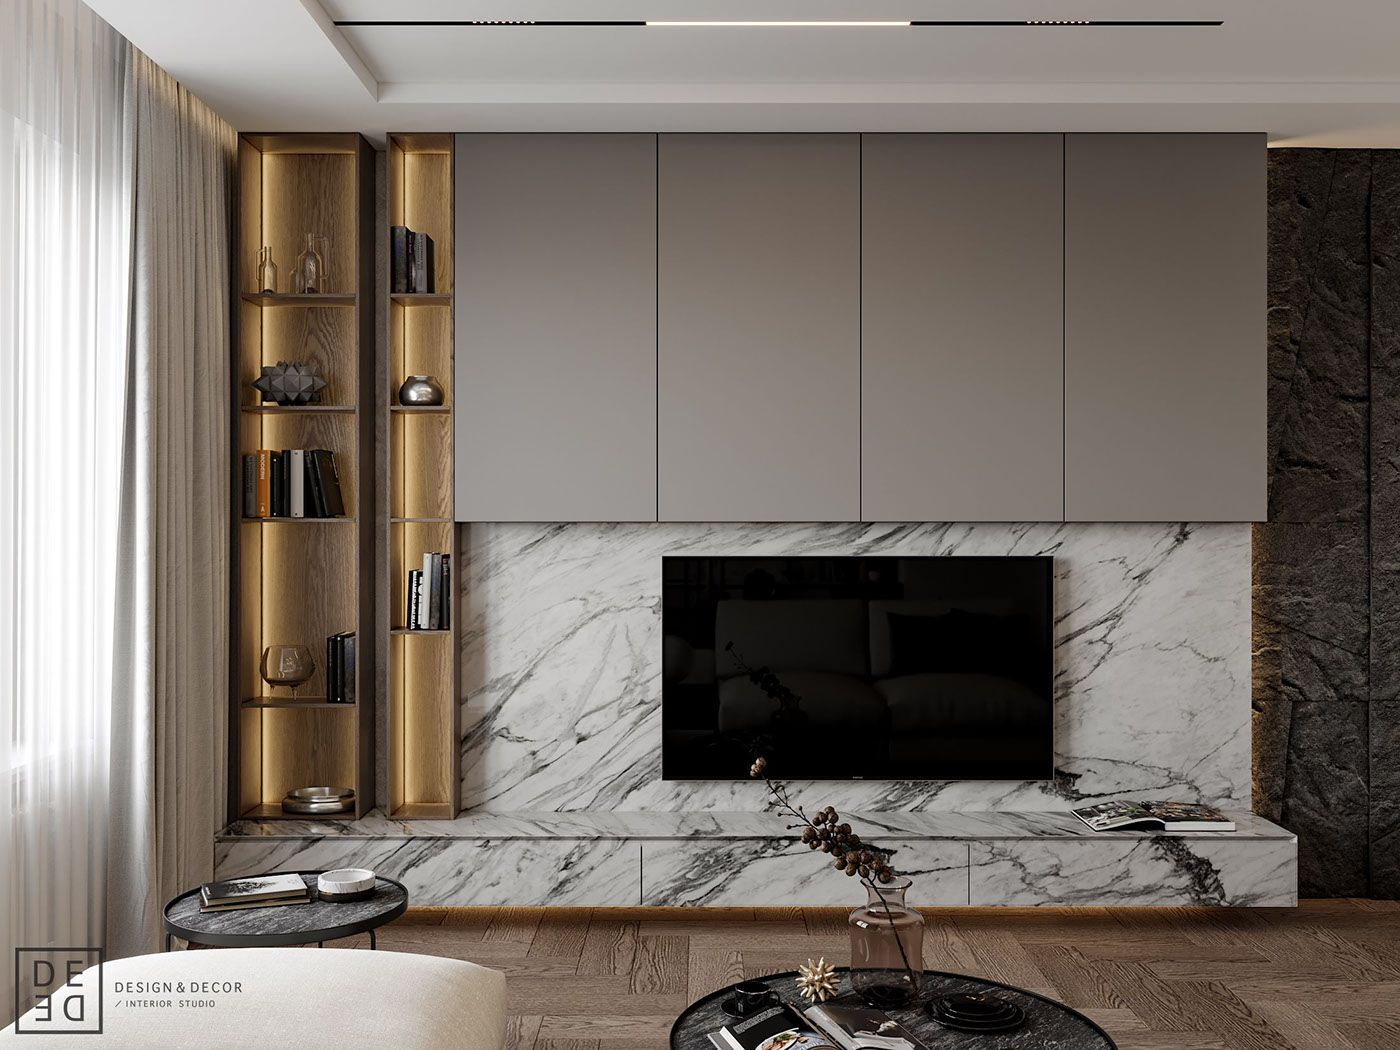 de de interior with sophisticated nature on behance on incredible tv wall design ideas for living room decor layouts of tv models id=66289